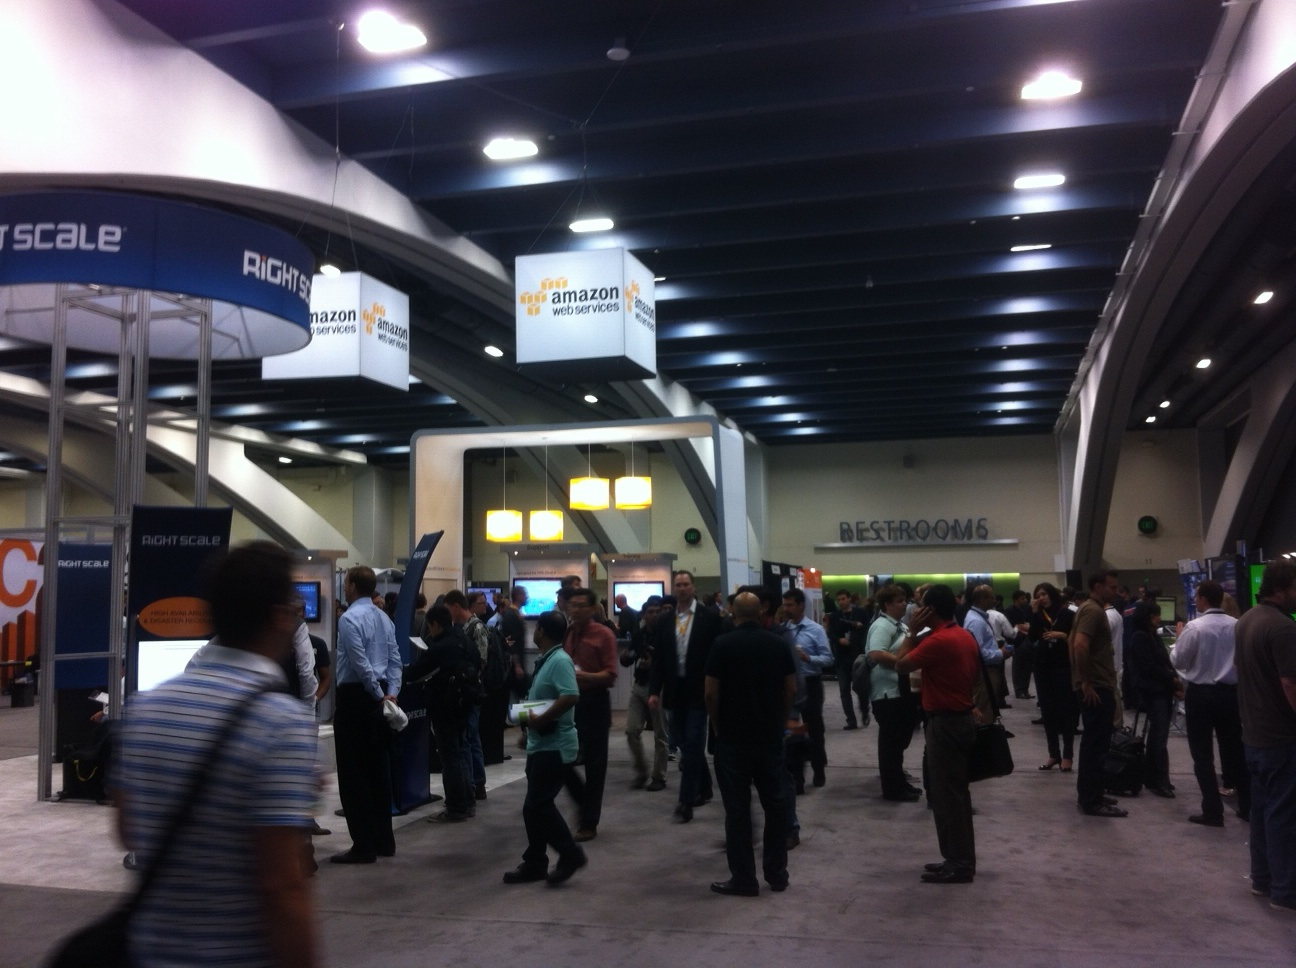 Conference attendees walk the exhibition floor at the AWS Summit 2013 in San Francisco on April 30.